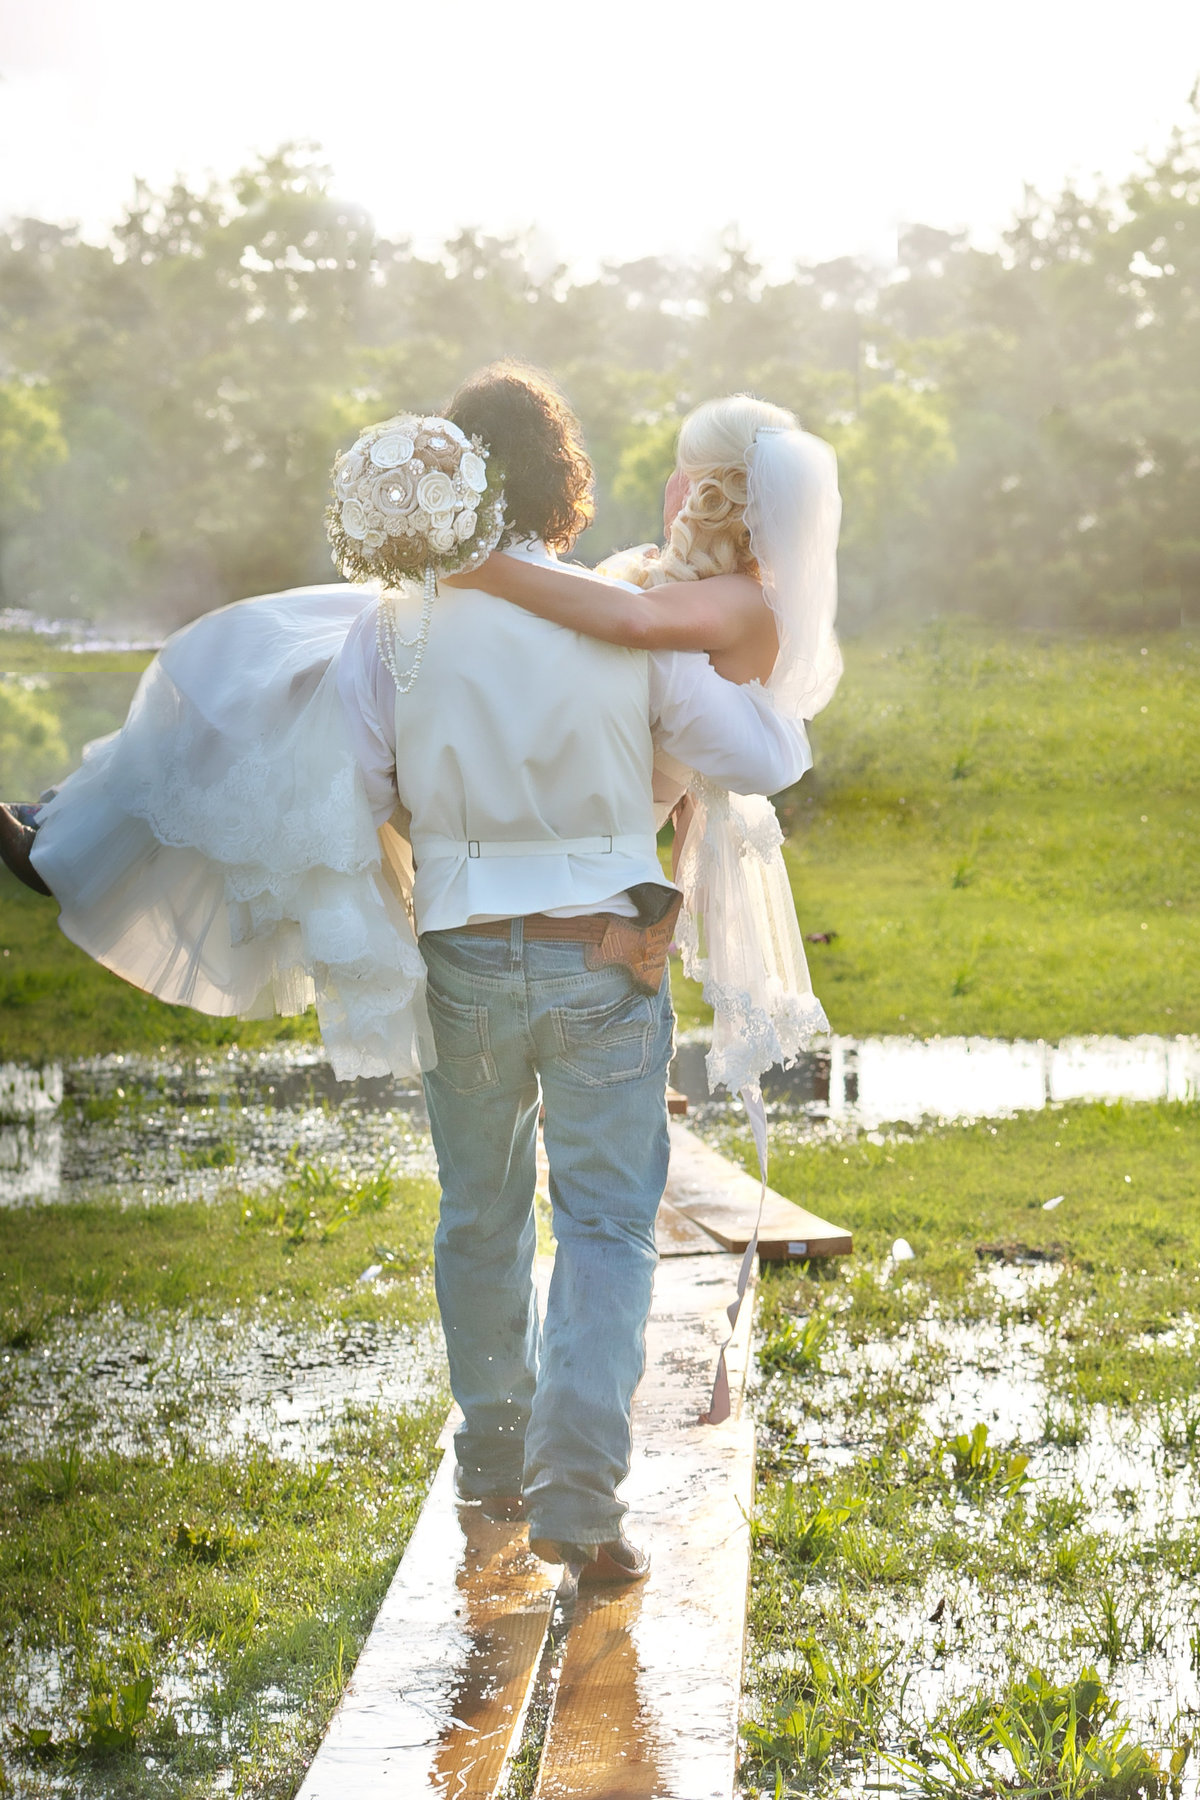 Wedding Photographer Lake Charles